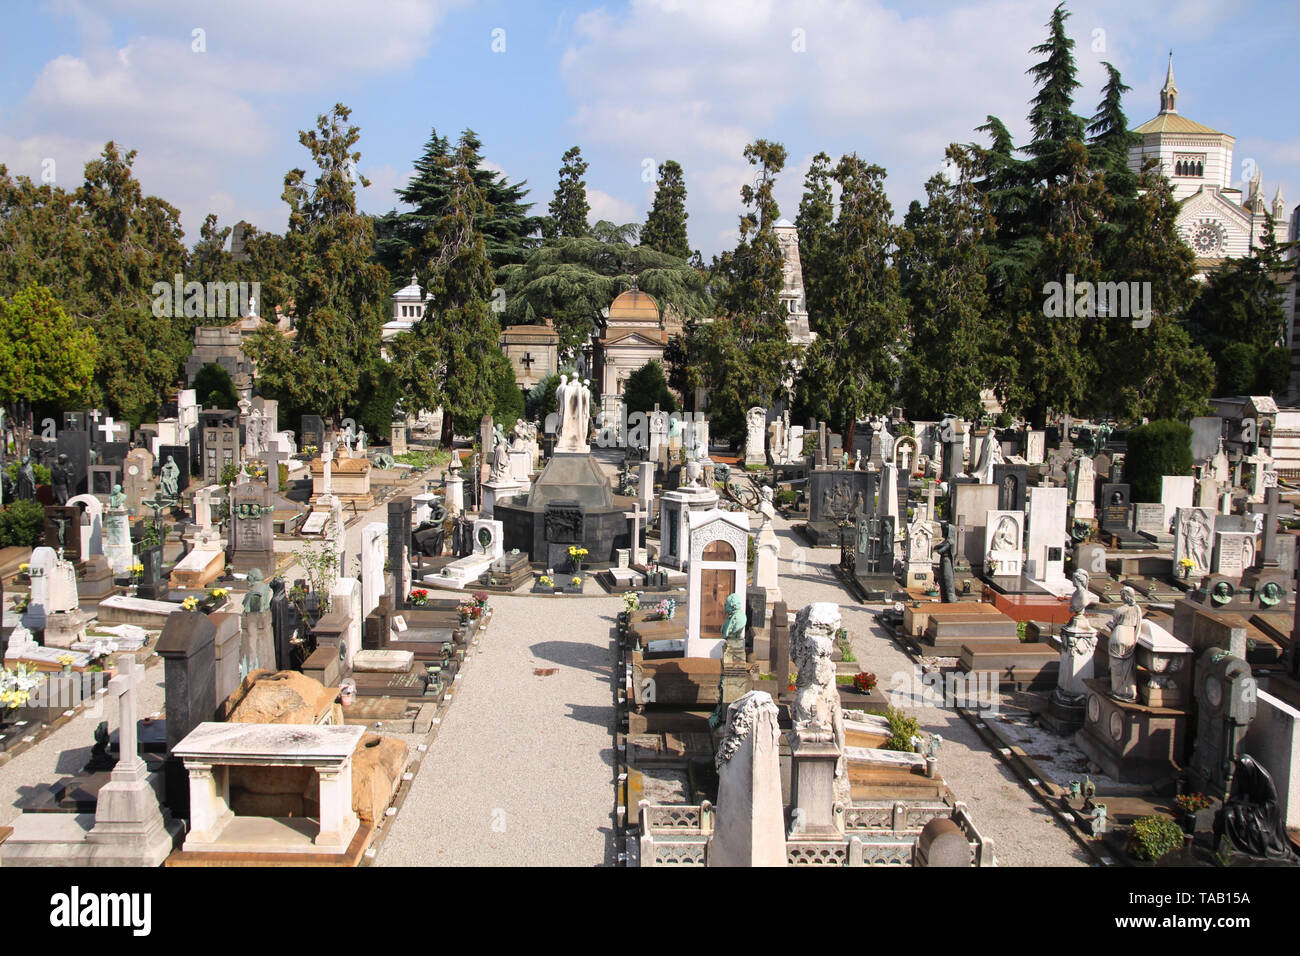 Milan, Italy. Famous landmark - the Monumental Cemetery (Cimitero Monumentale) with Famedio chapel in the background. - Stock Image